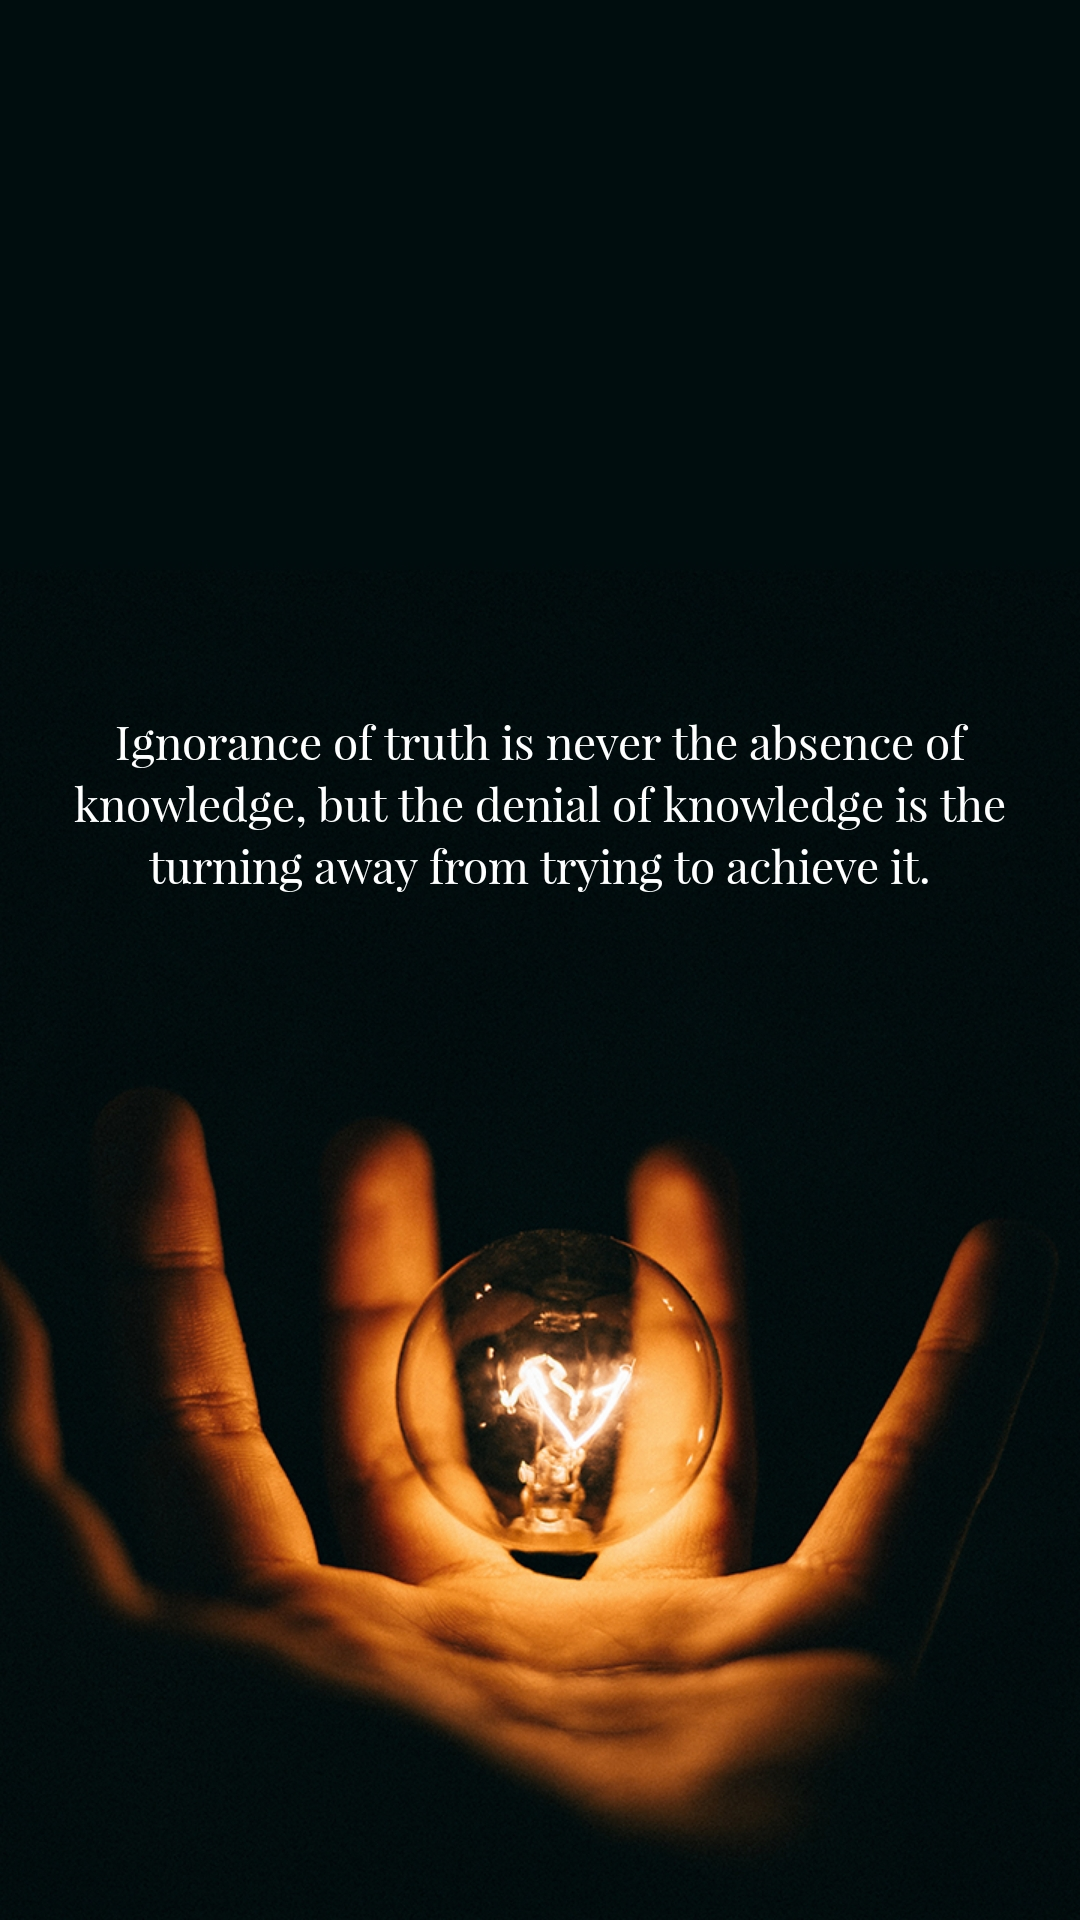 Ignorance of truth is never the absence of knowledge, but the denial of knowledge is the turning away from trying to achieve it.